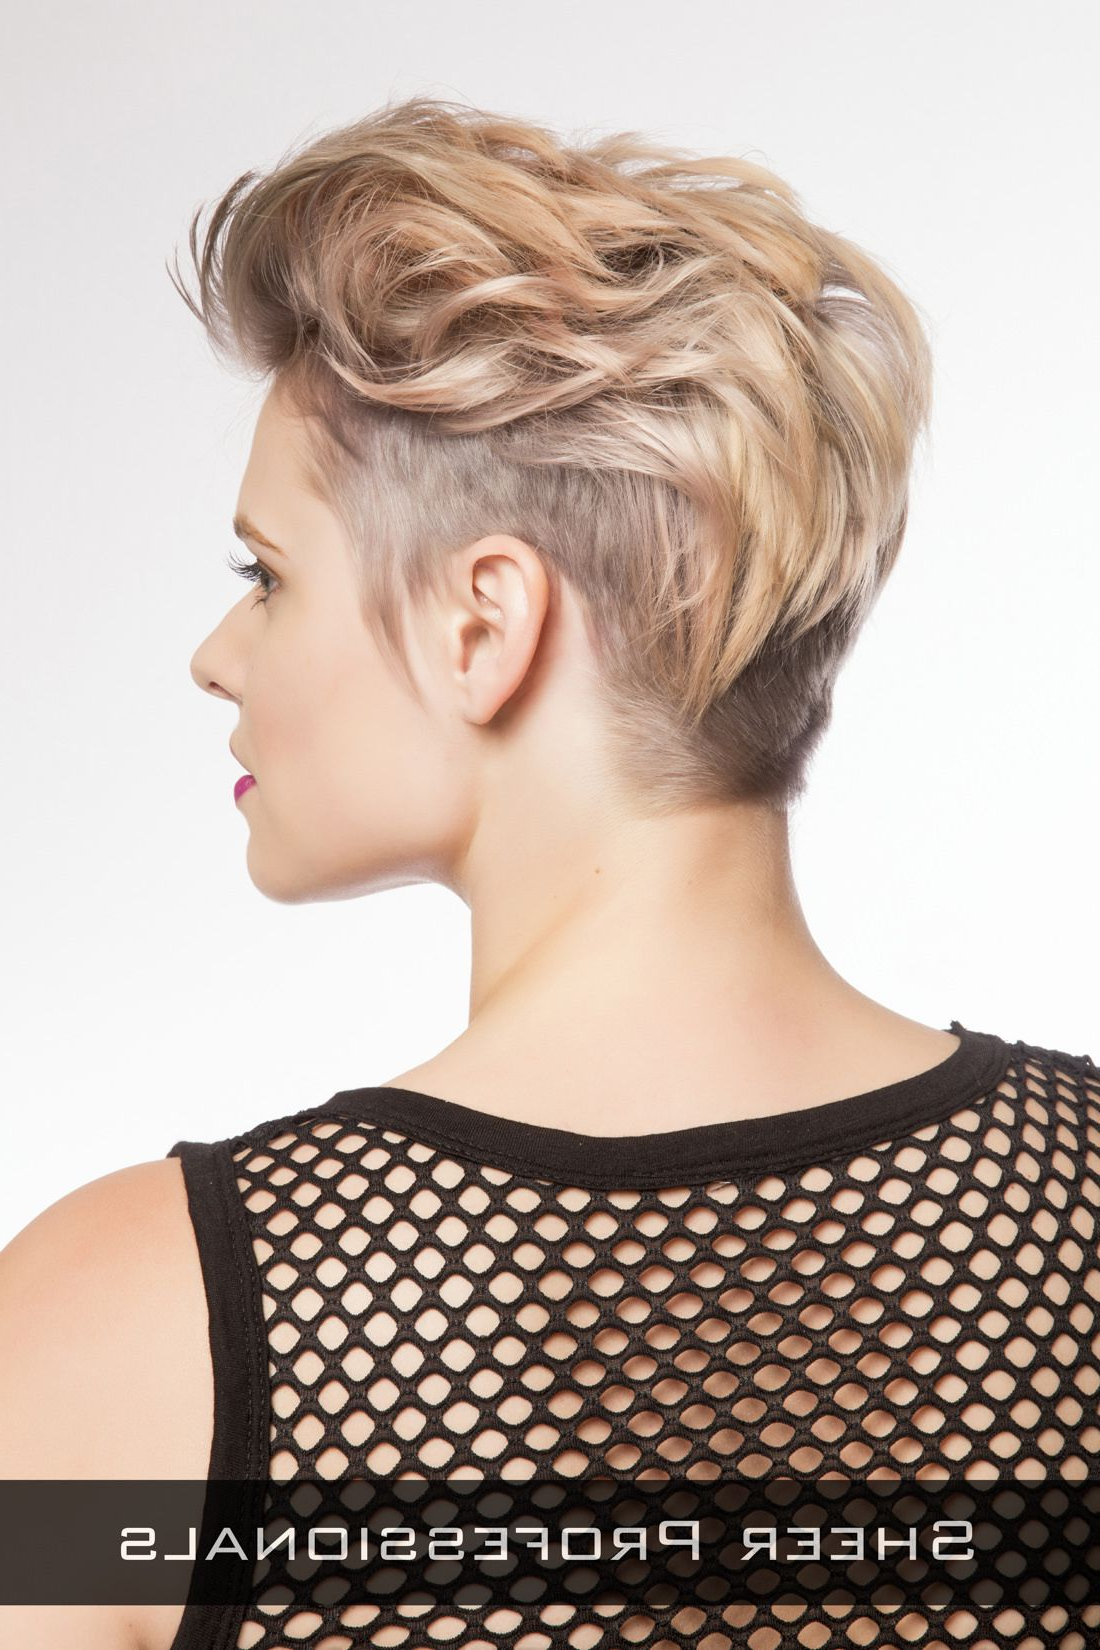 33 Flattering Short Hairstyles For Round Faces In 2018 | New Throughout Edgy Short Hairstyles For Round Faces (View 8 of 25)